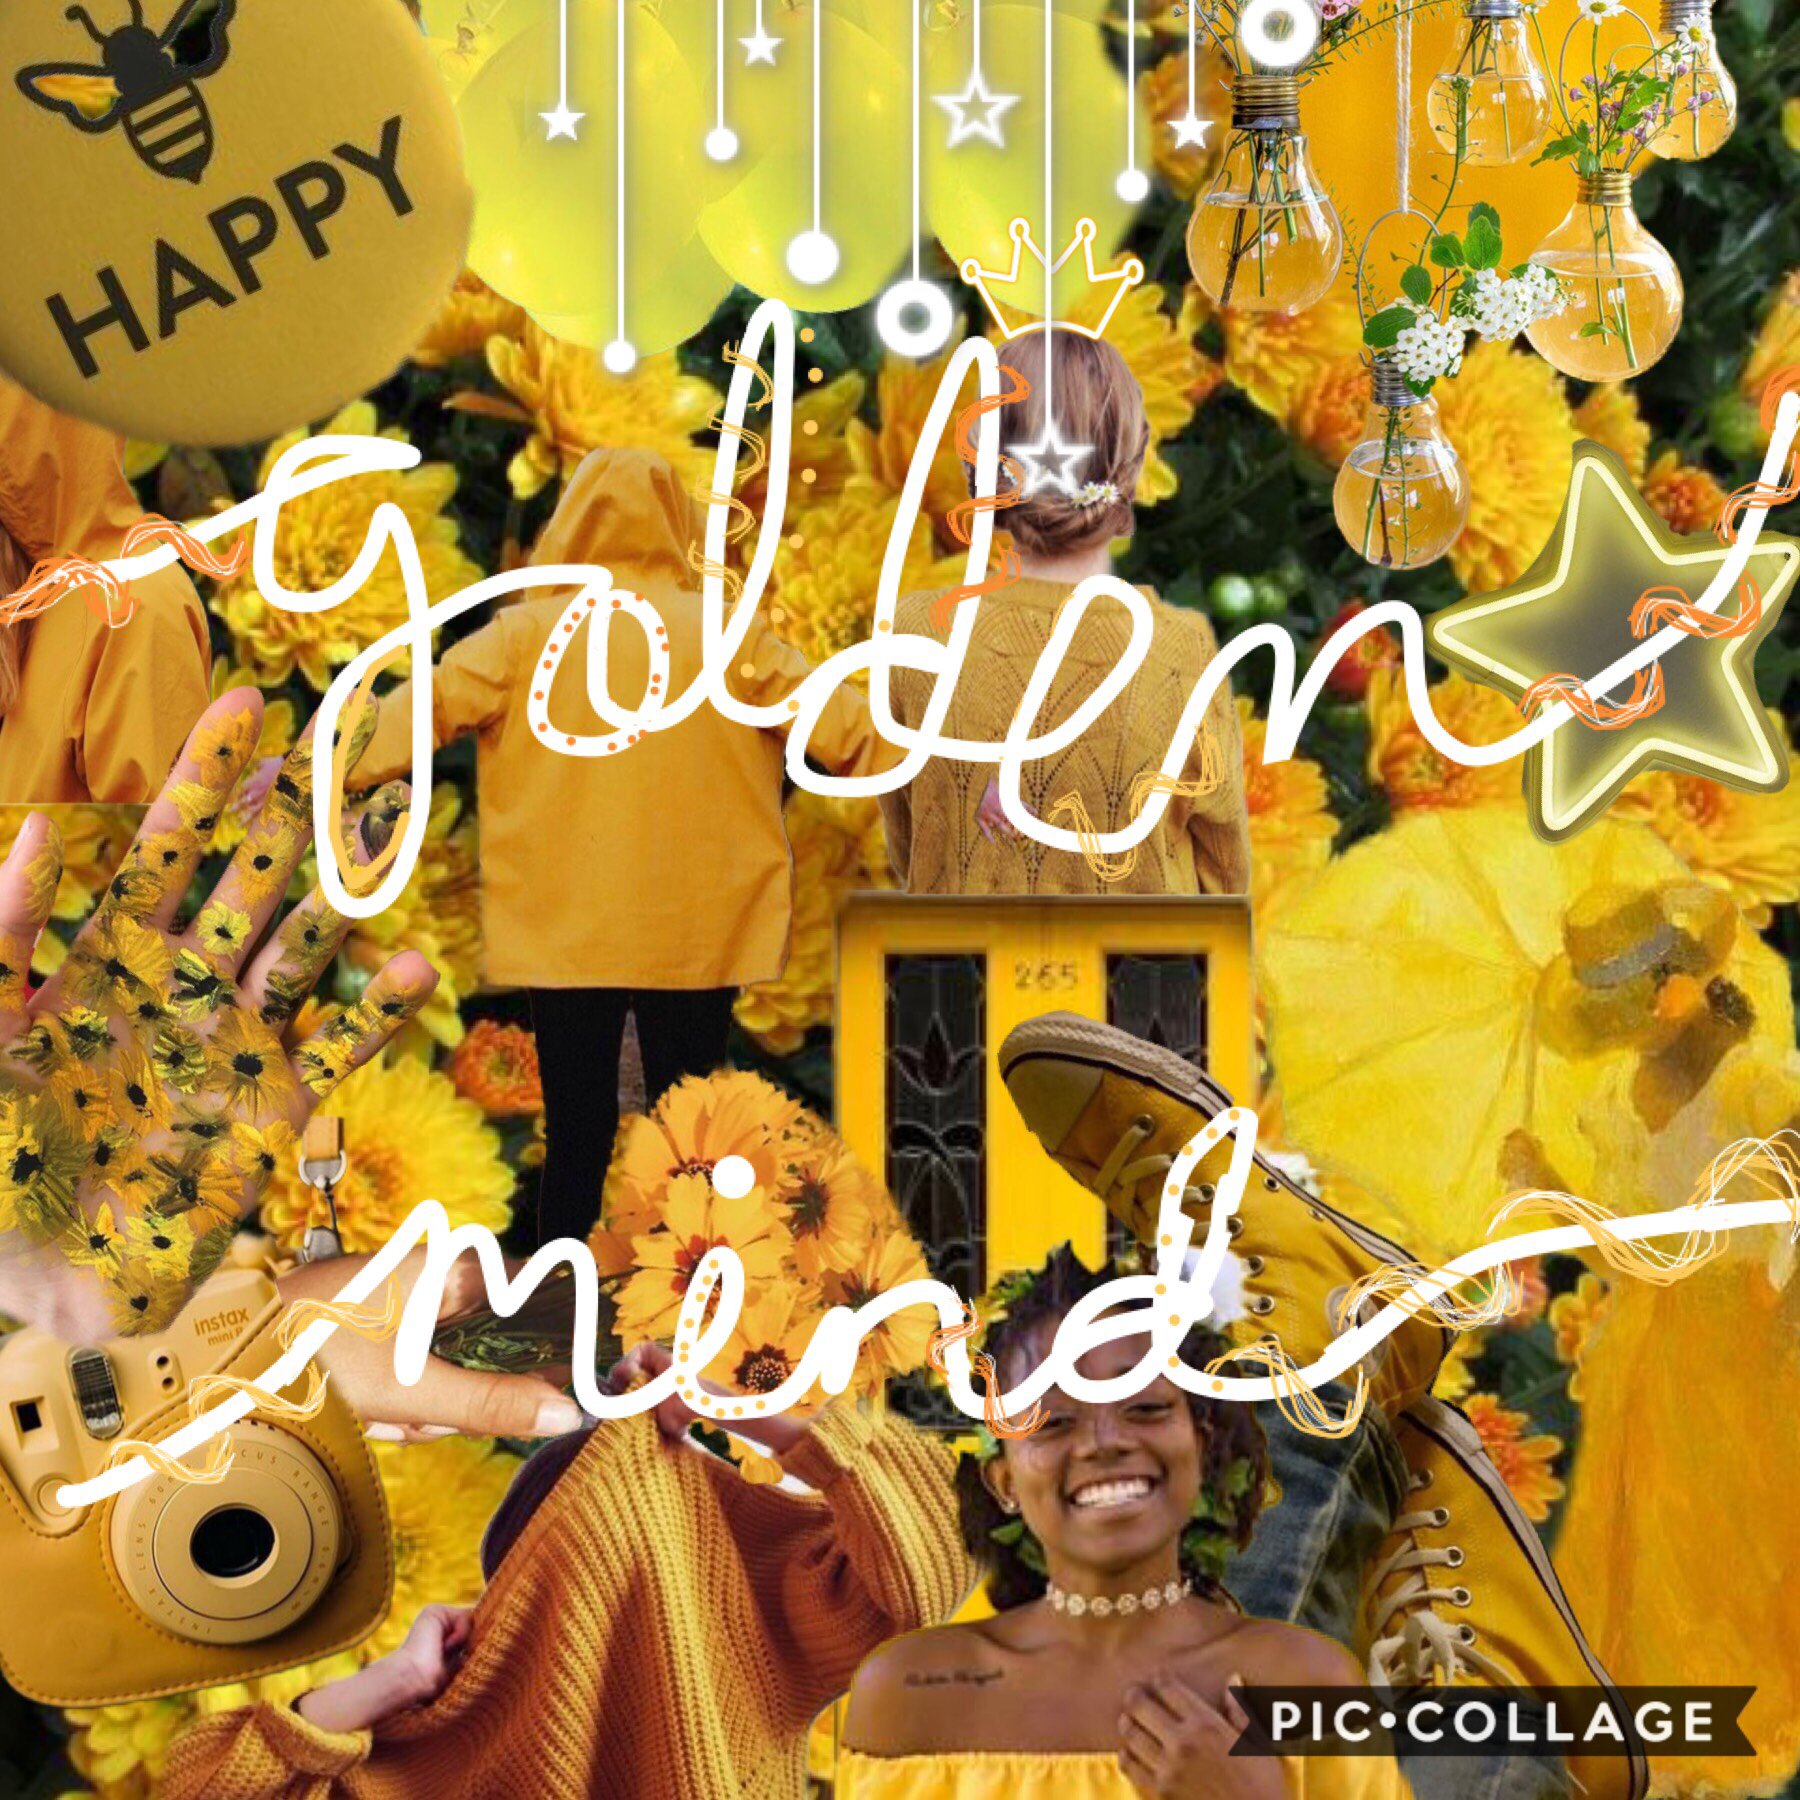 ✨tap✨ Here's a quick edit... I love the color yellow so I created a yellow collage😊 QOTD:🦓or🦒  AOTD:🦓 8/18/2018